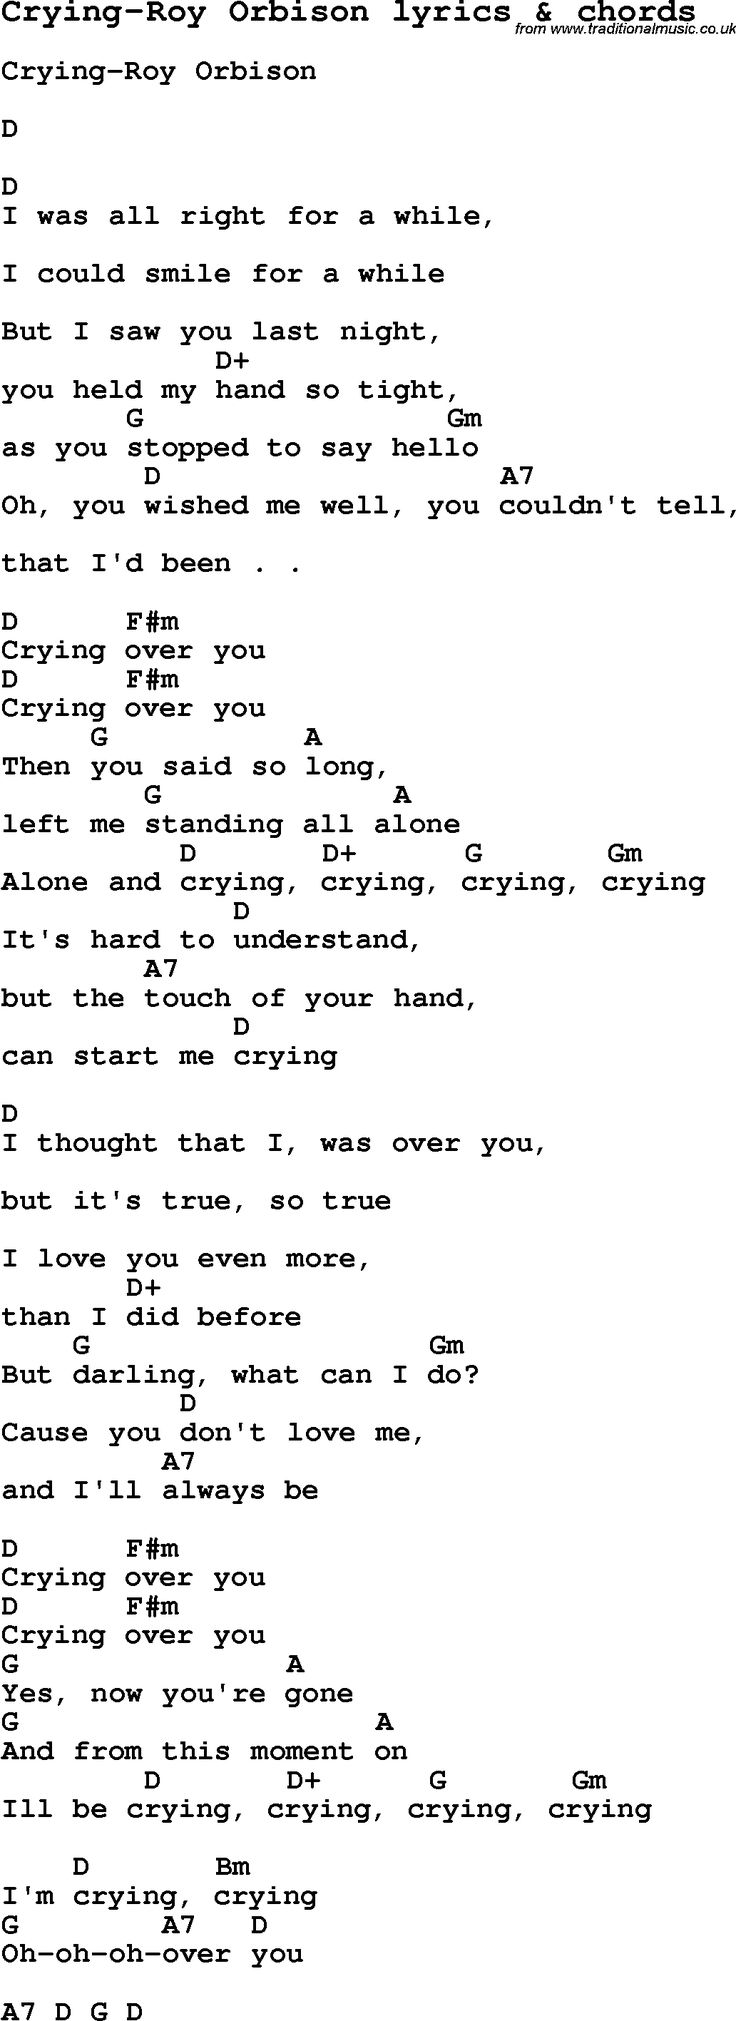 425 best music images on pinterest guitar chord lyrics and love song lyrics for crying roy orbison with chords for ukulele guitar banjo hexwebz Images